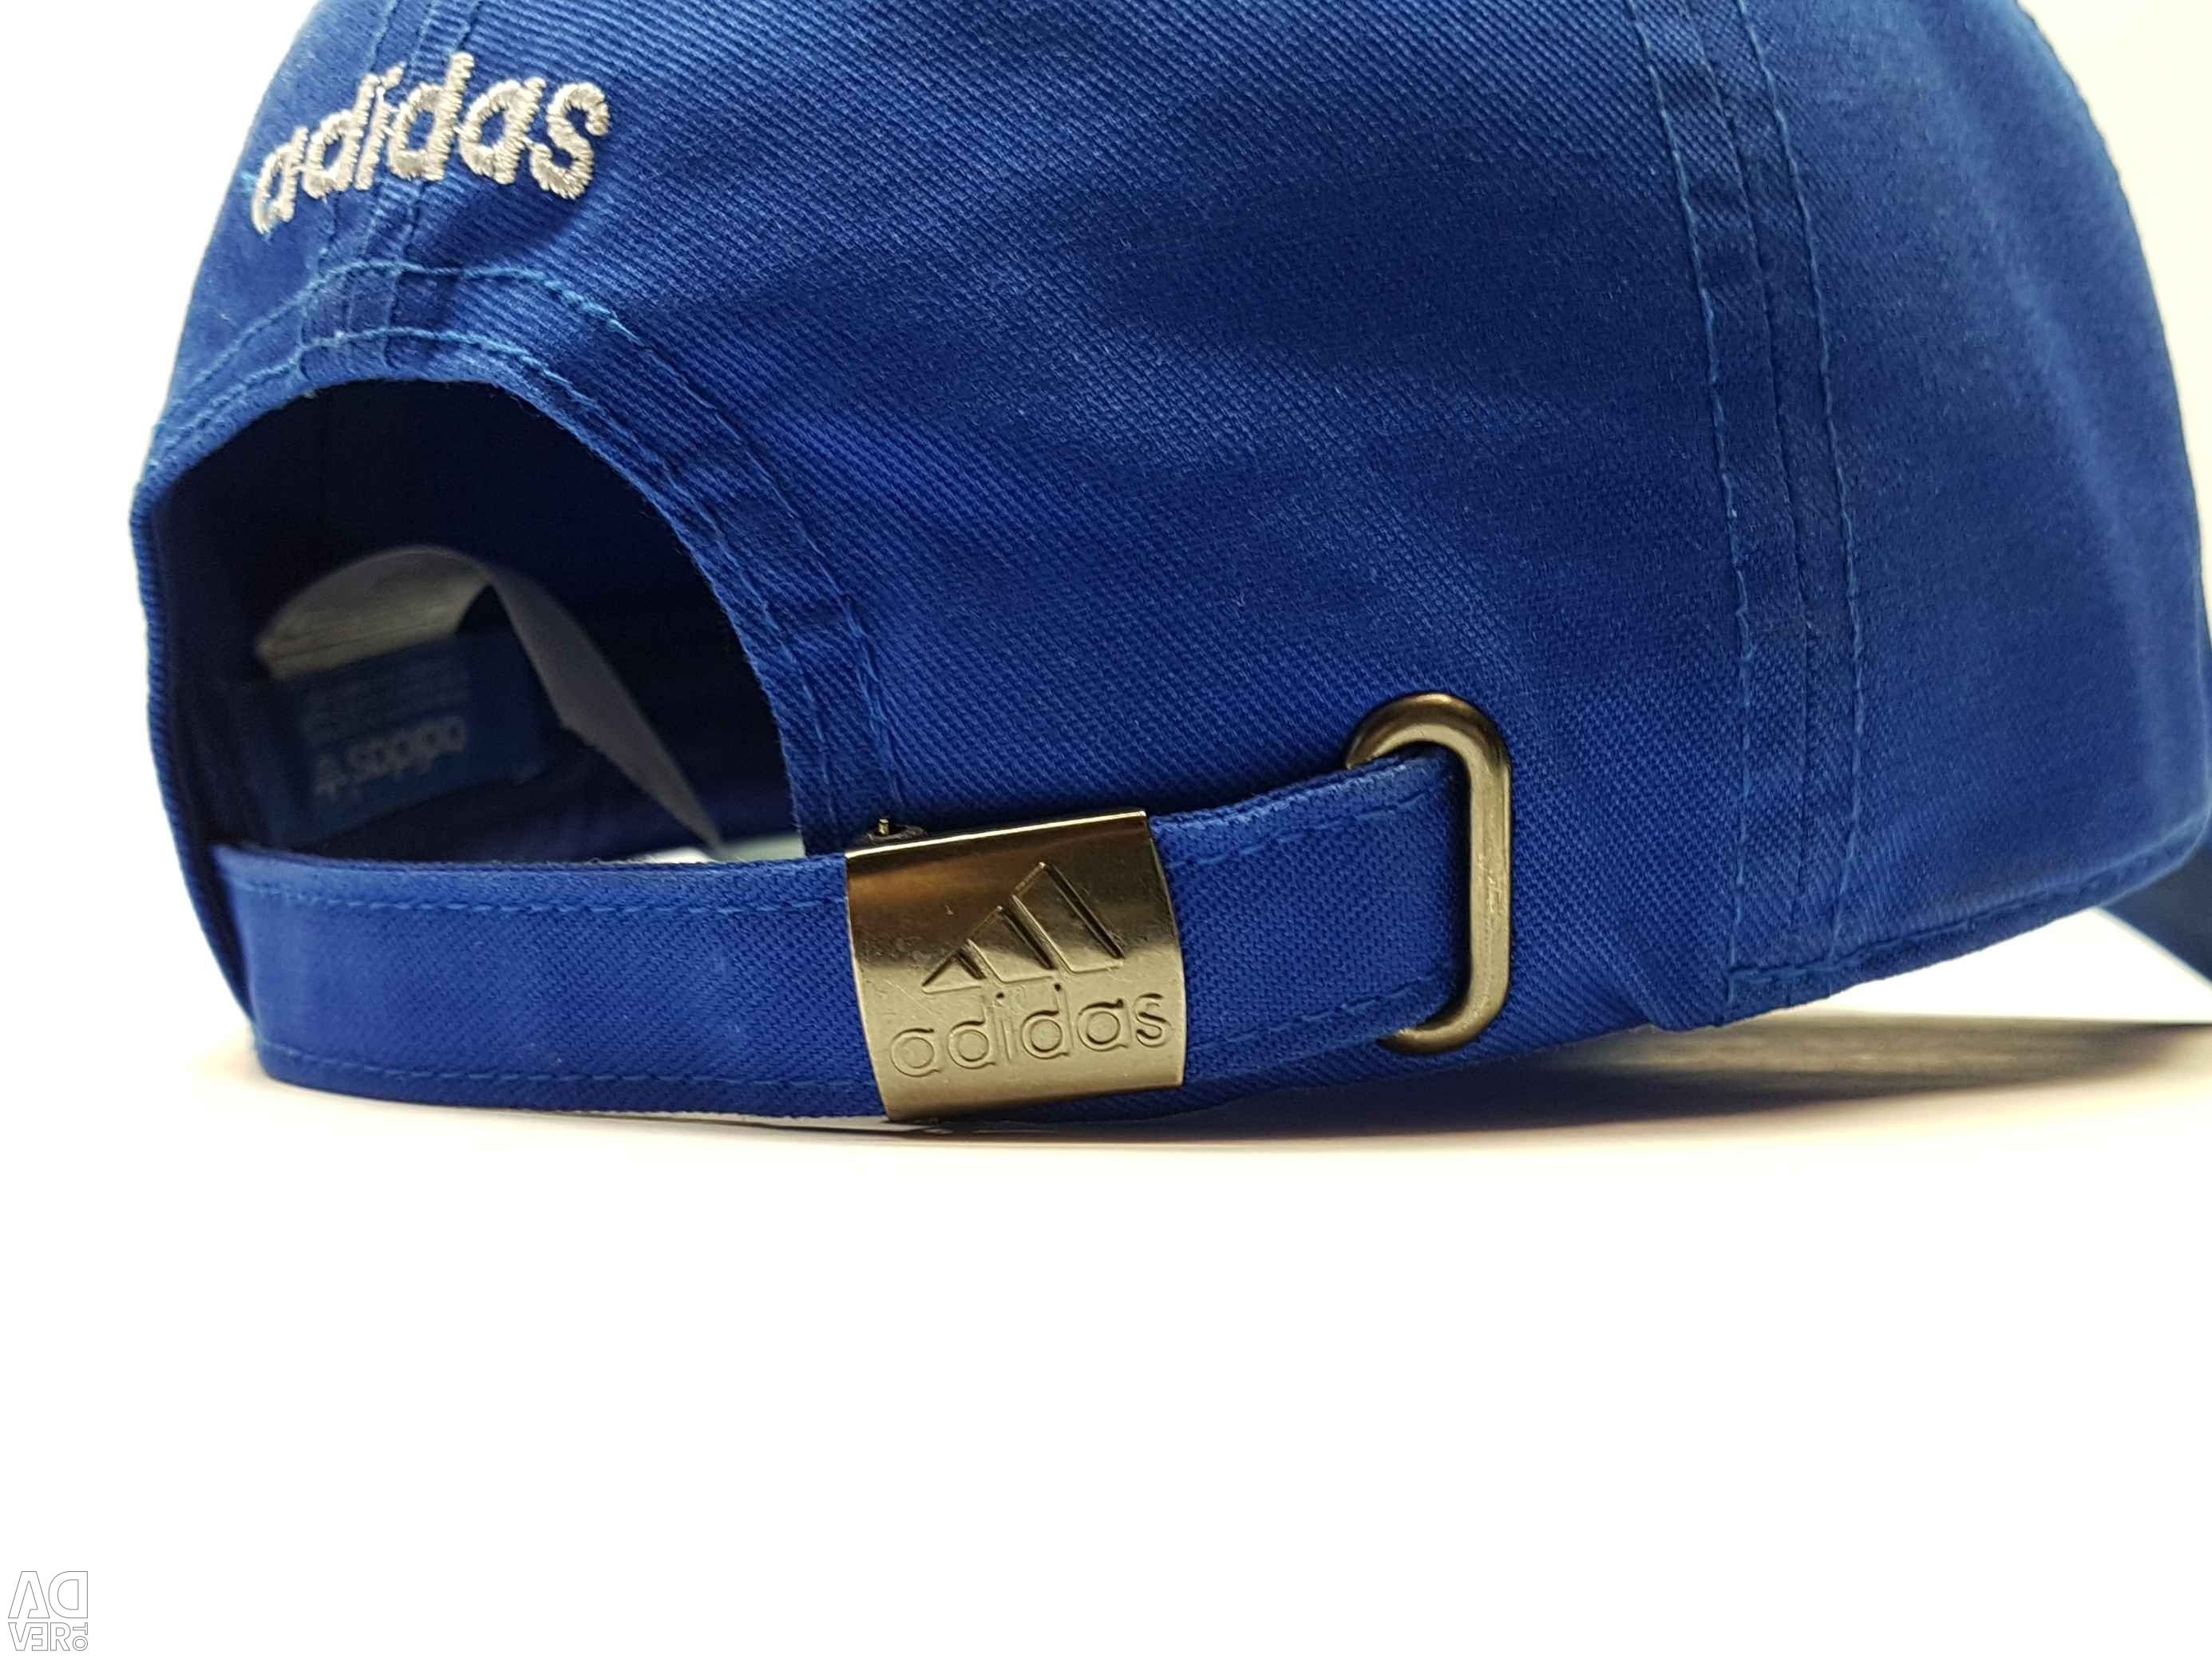 Adidas classic baseball cap (blue neon), city Moscow